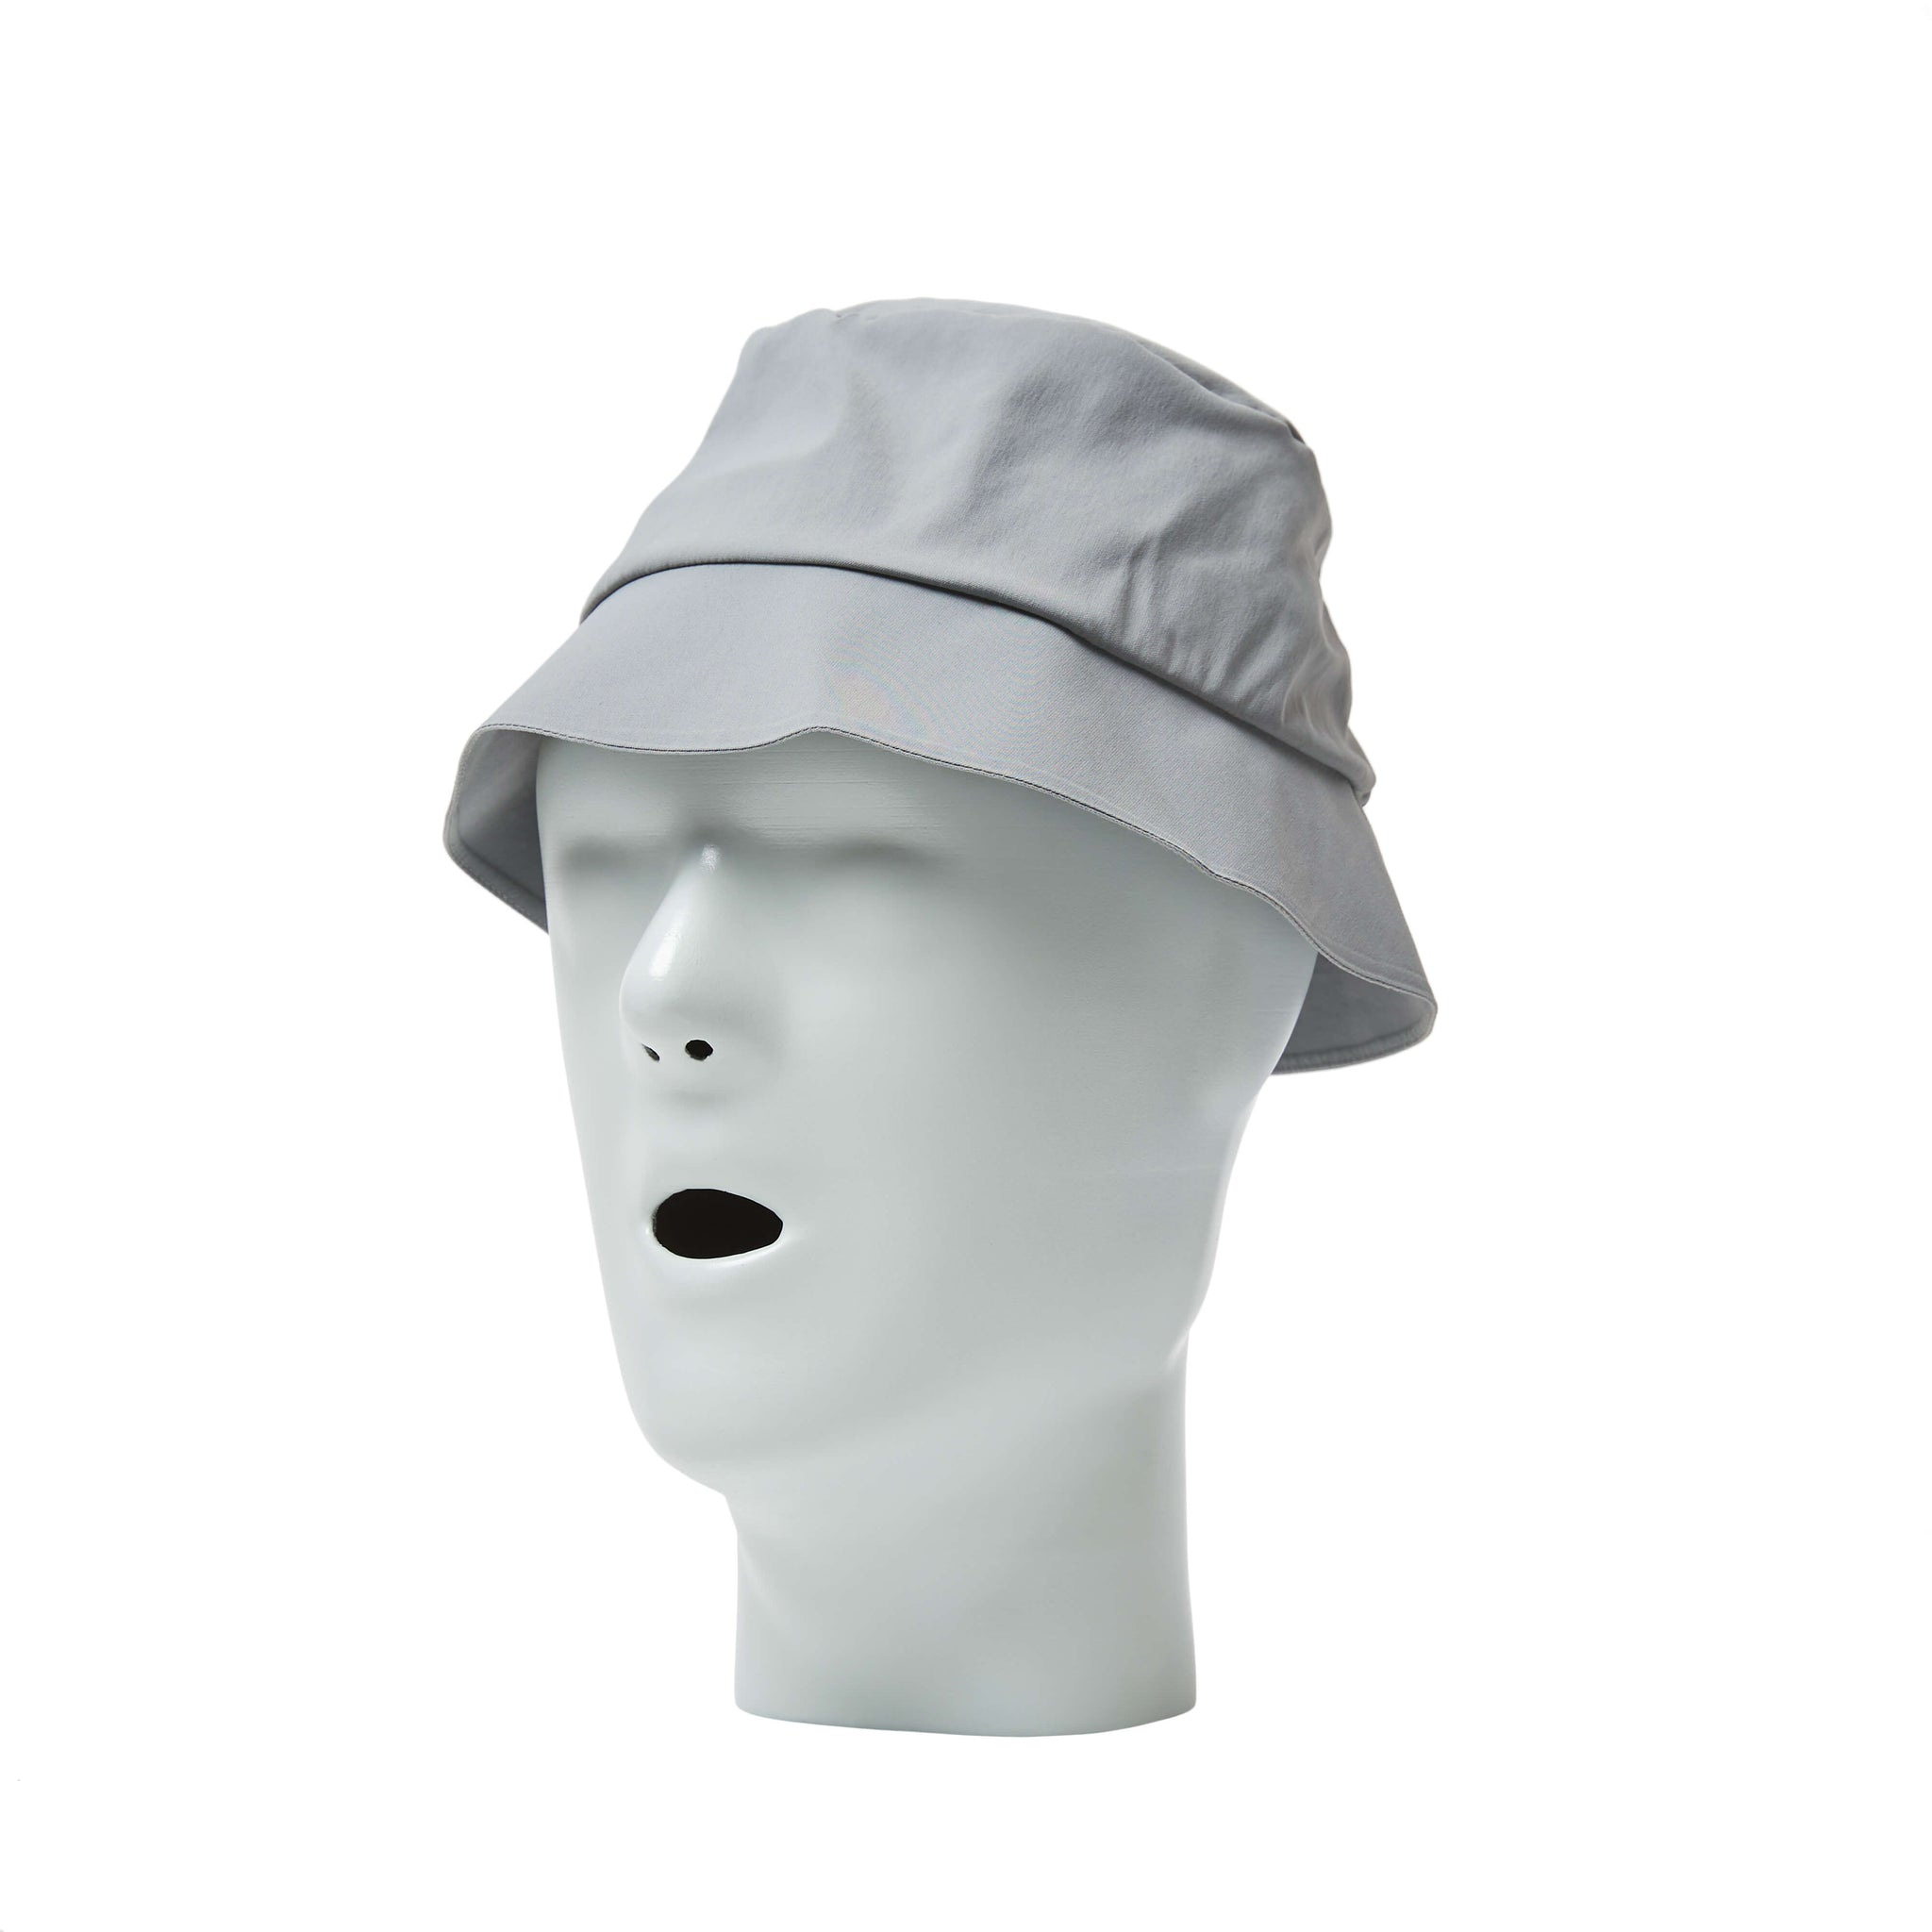 AFFIX WORKS AFFX WRKS STOW BUCKET HAT SILVER GREY